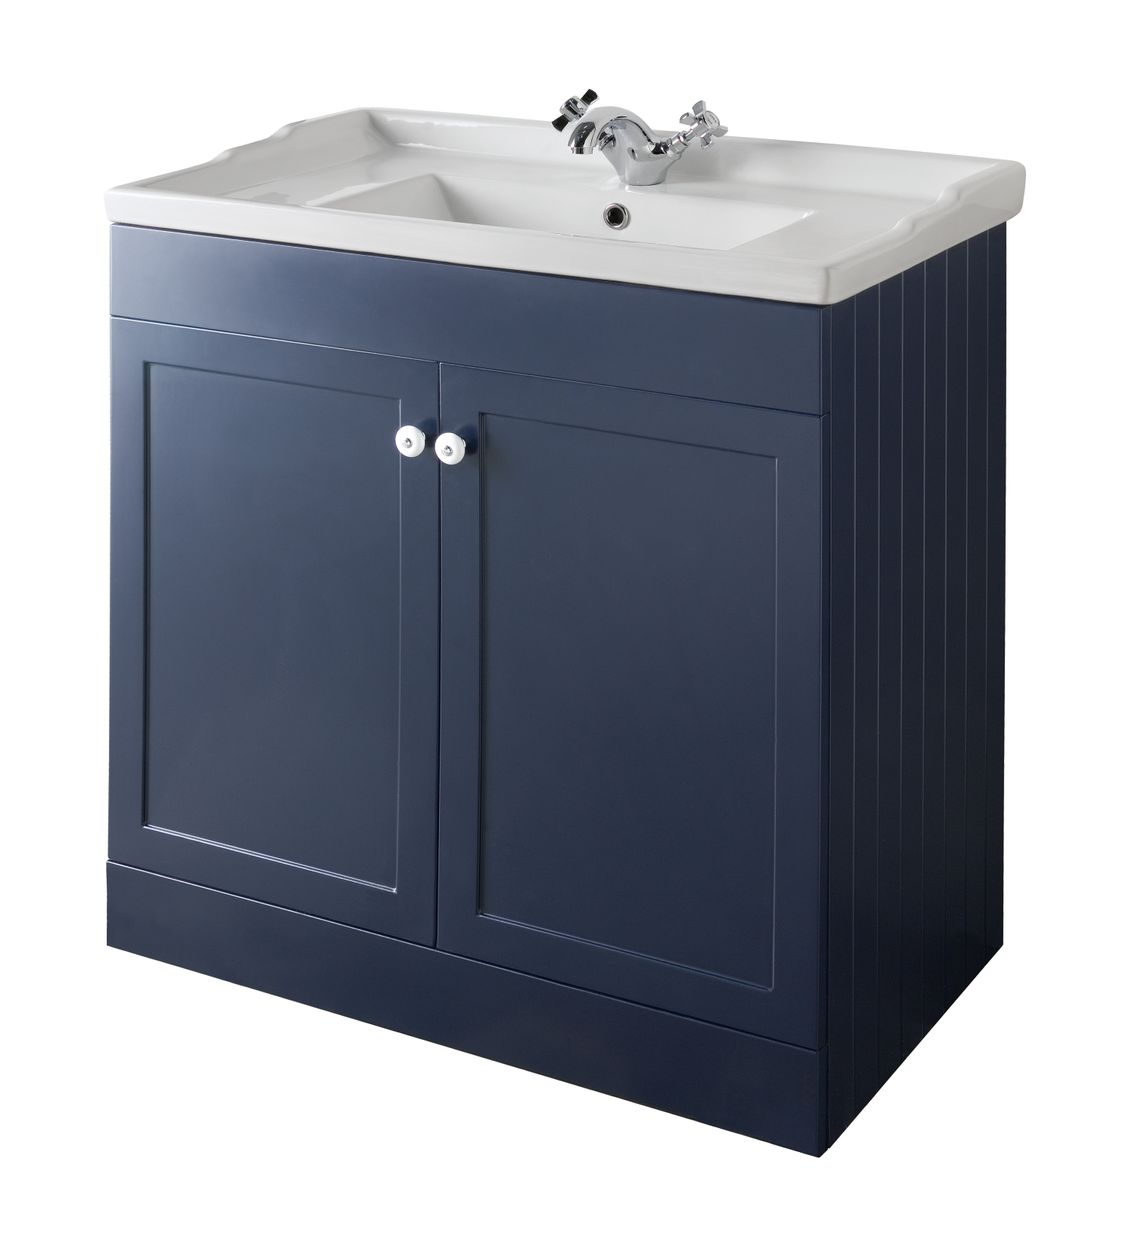 Bathroom Furniture, 800mm Unit - Matt Sapphire Blue, STRABANE WHOLESALE LTD, Strabane, Co. Tyrone